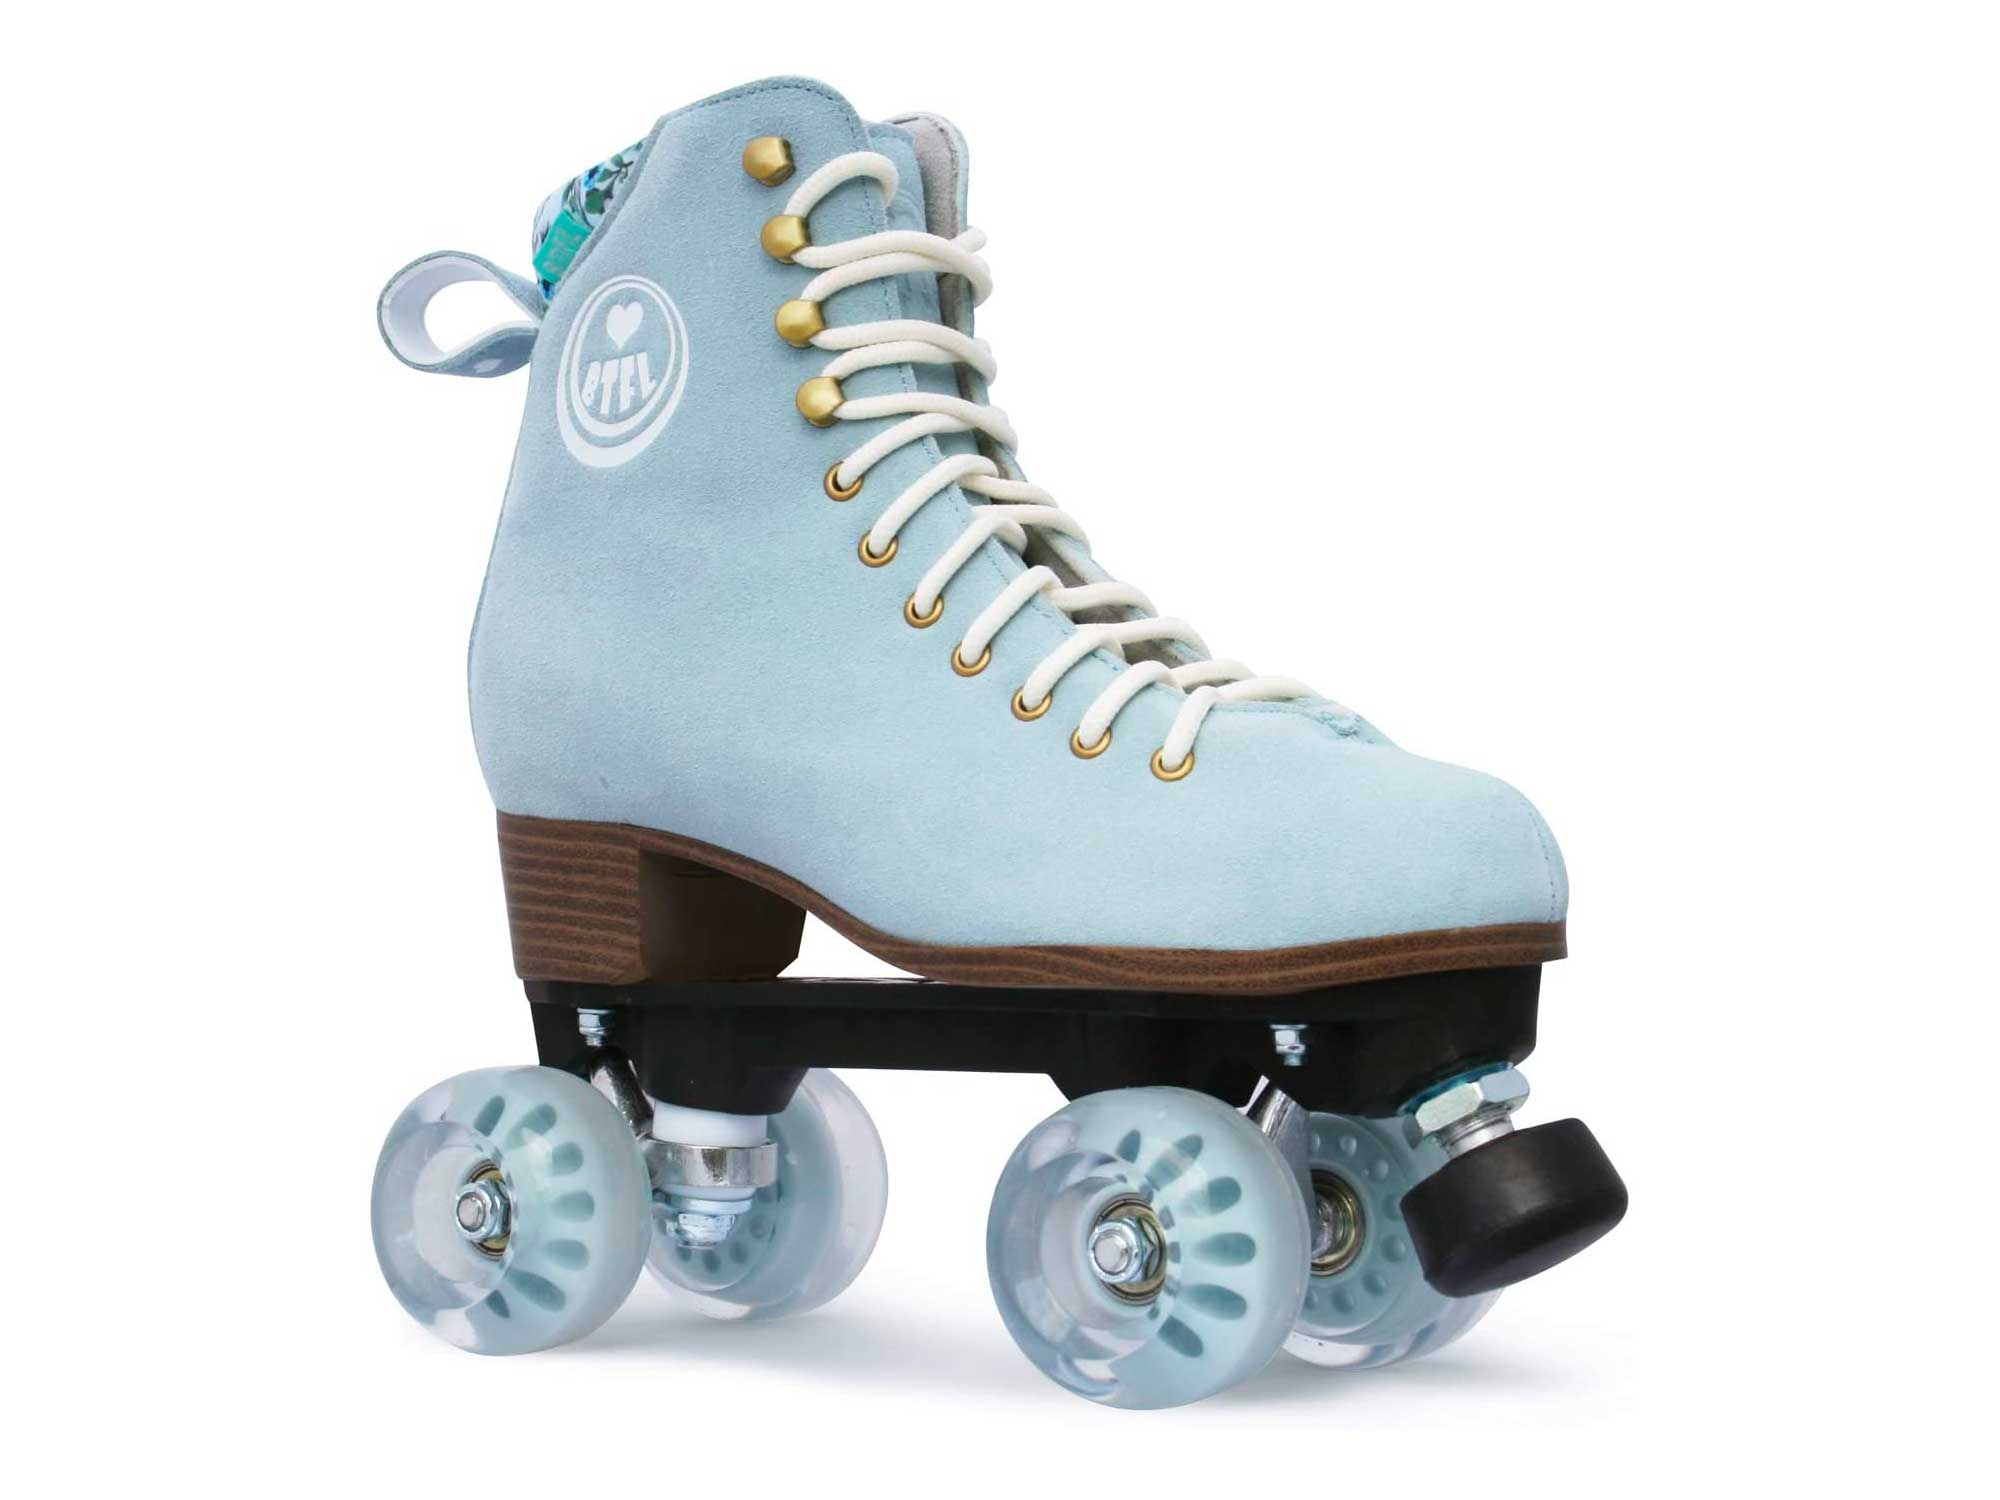 BTFL Pro Roller Skates for Women & Men with Height Adjustable stoppers - Ideal for Rink, Artistic and Rhythmic Skating